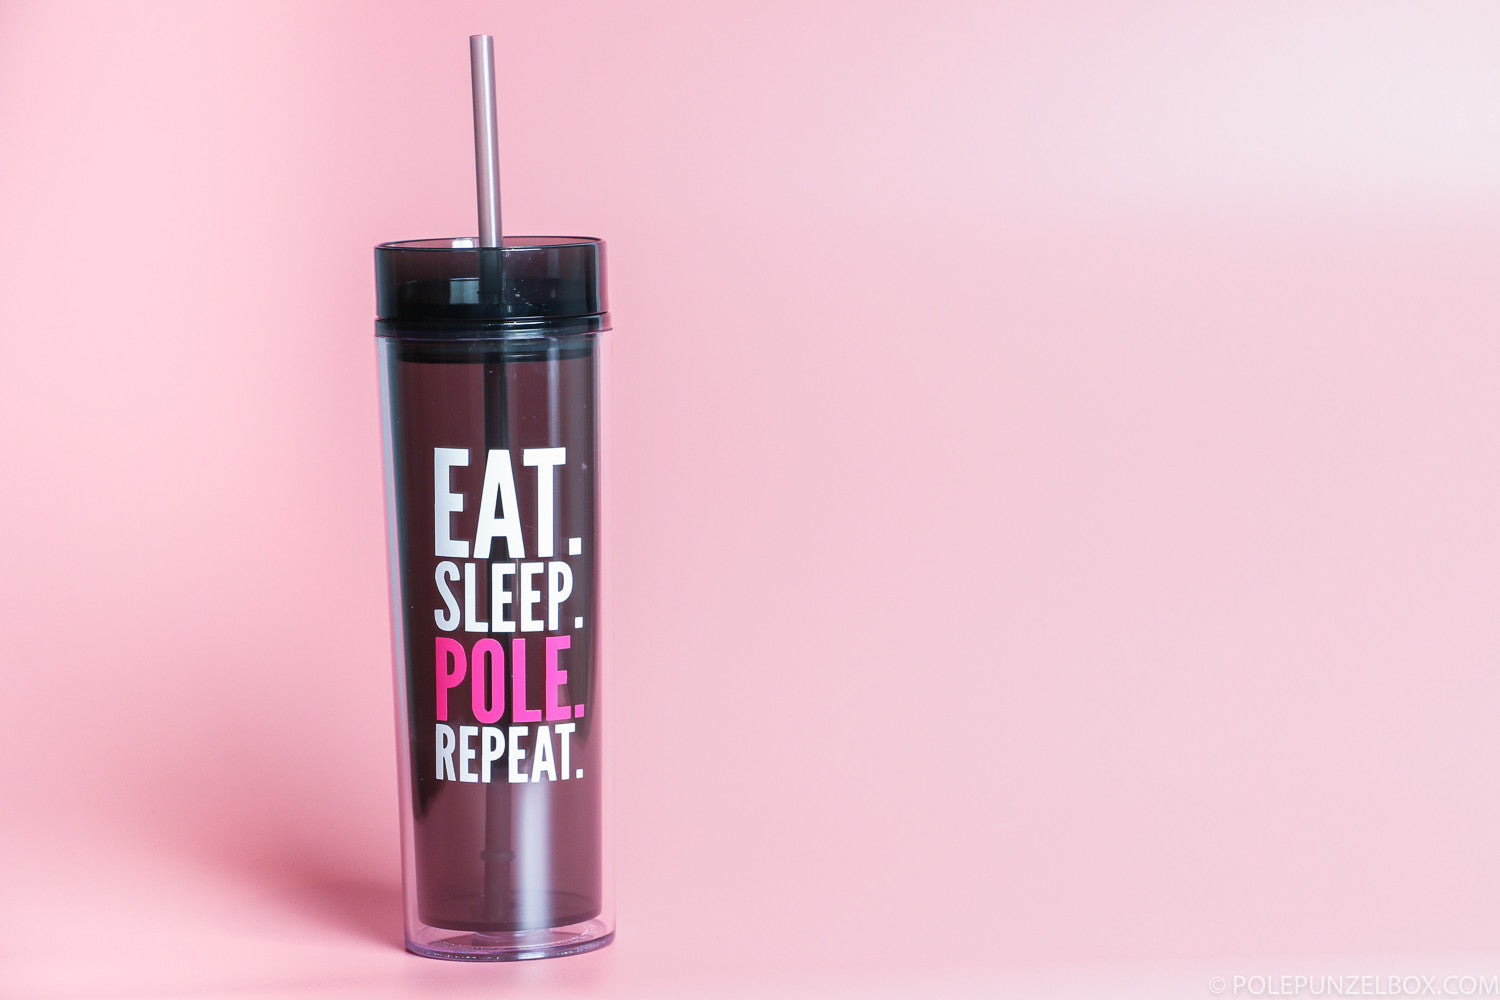 Unicorn Pool Pole Party - Custom Eat. Sleep. Pole. Repeat. 16oz Skinny Tumbler